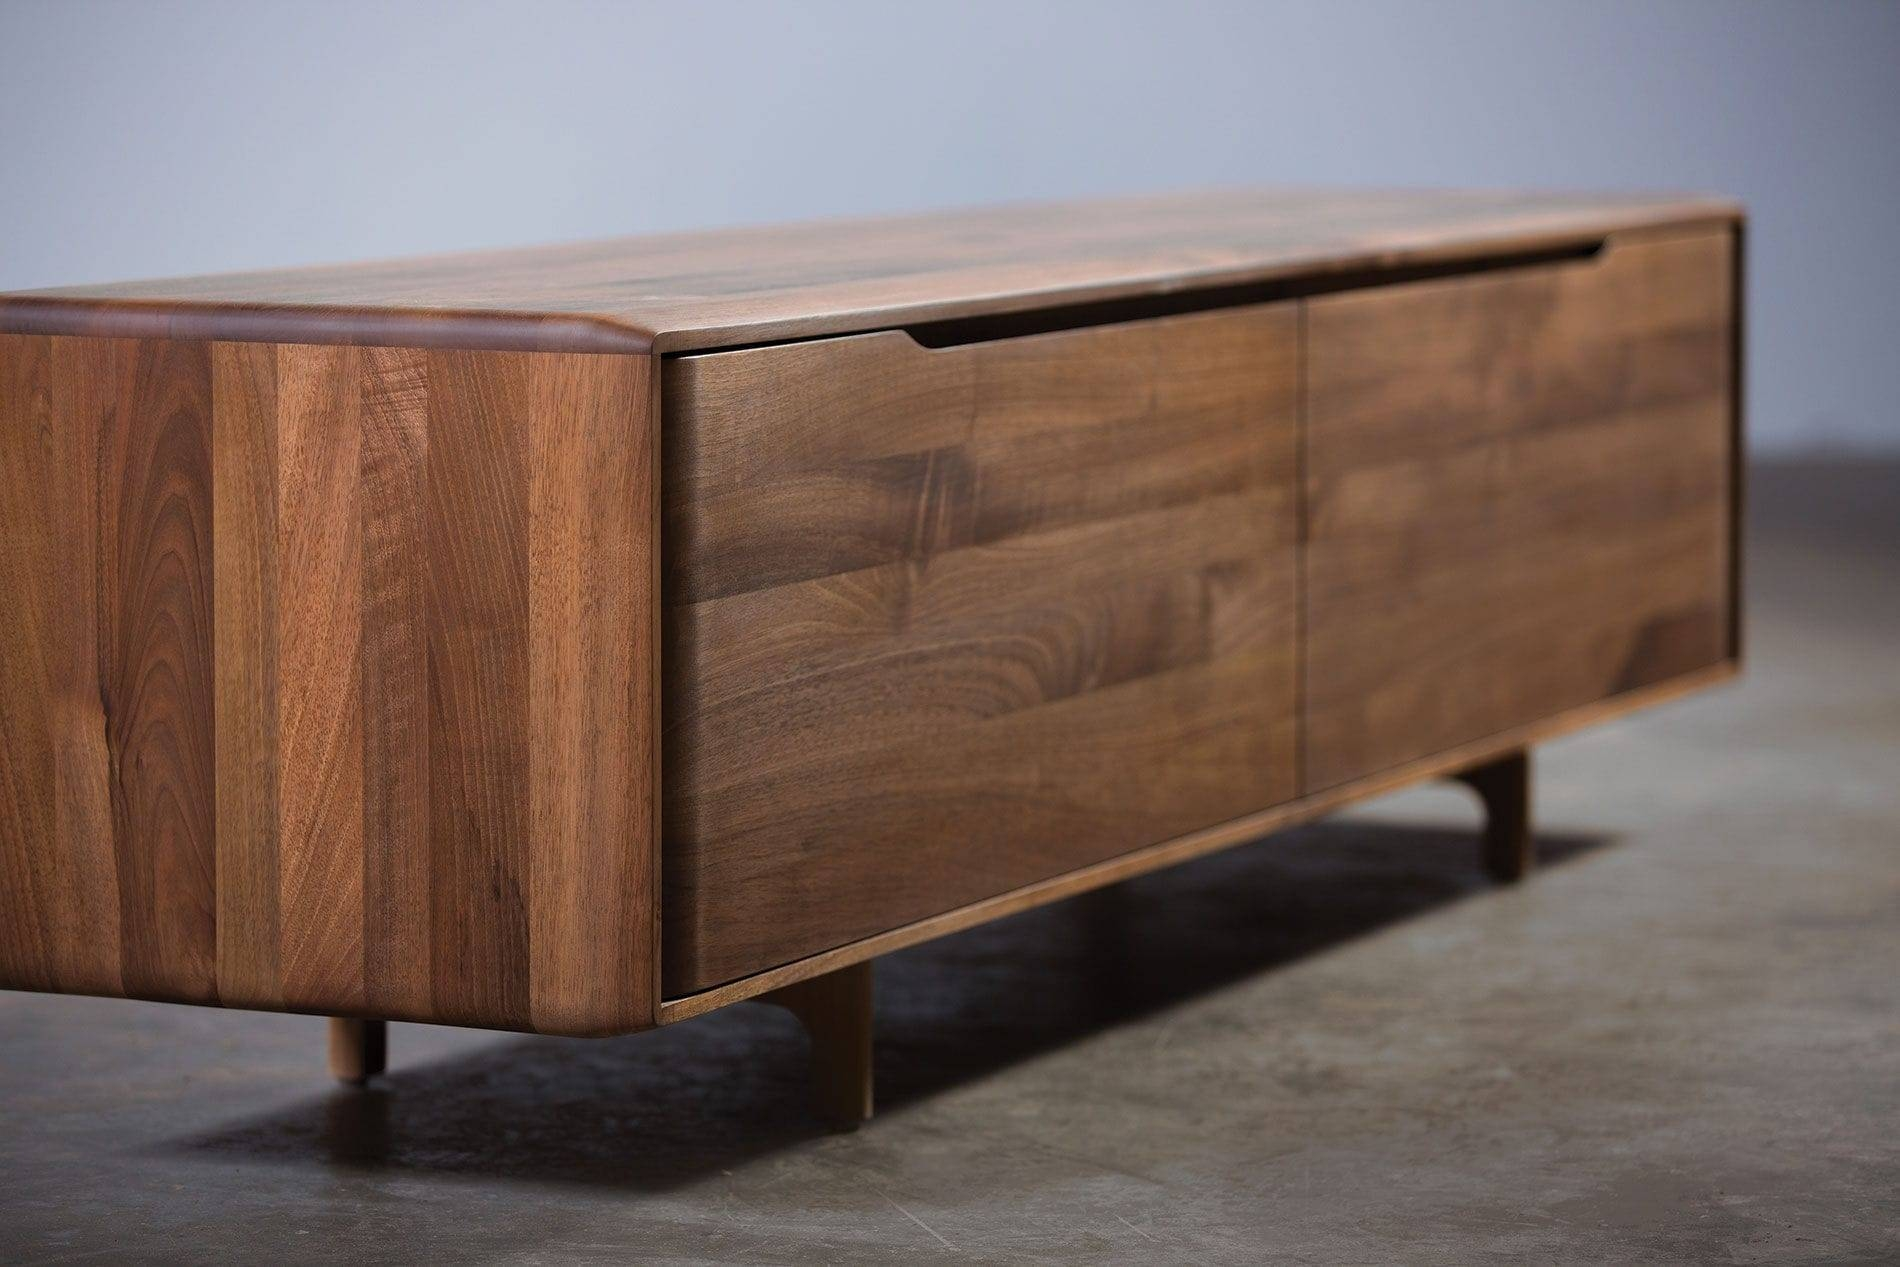 Contemporary Sideboard / Oak / Walnut / Solid Wood – Invito With Regard To Sideboards Contemporary (View 13 of 20)